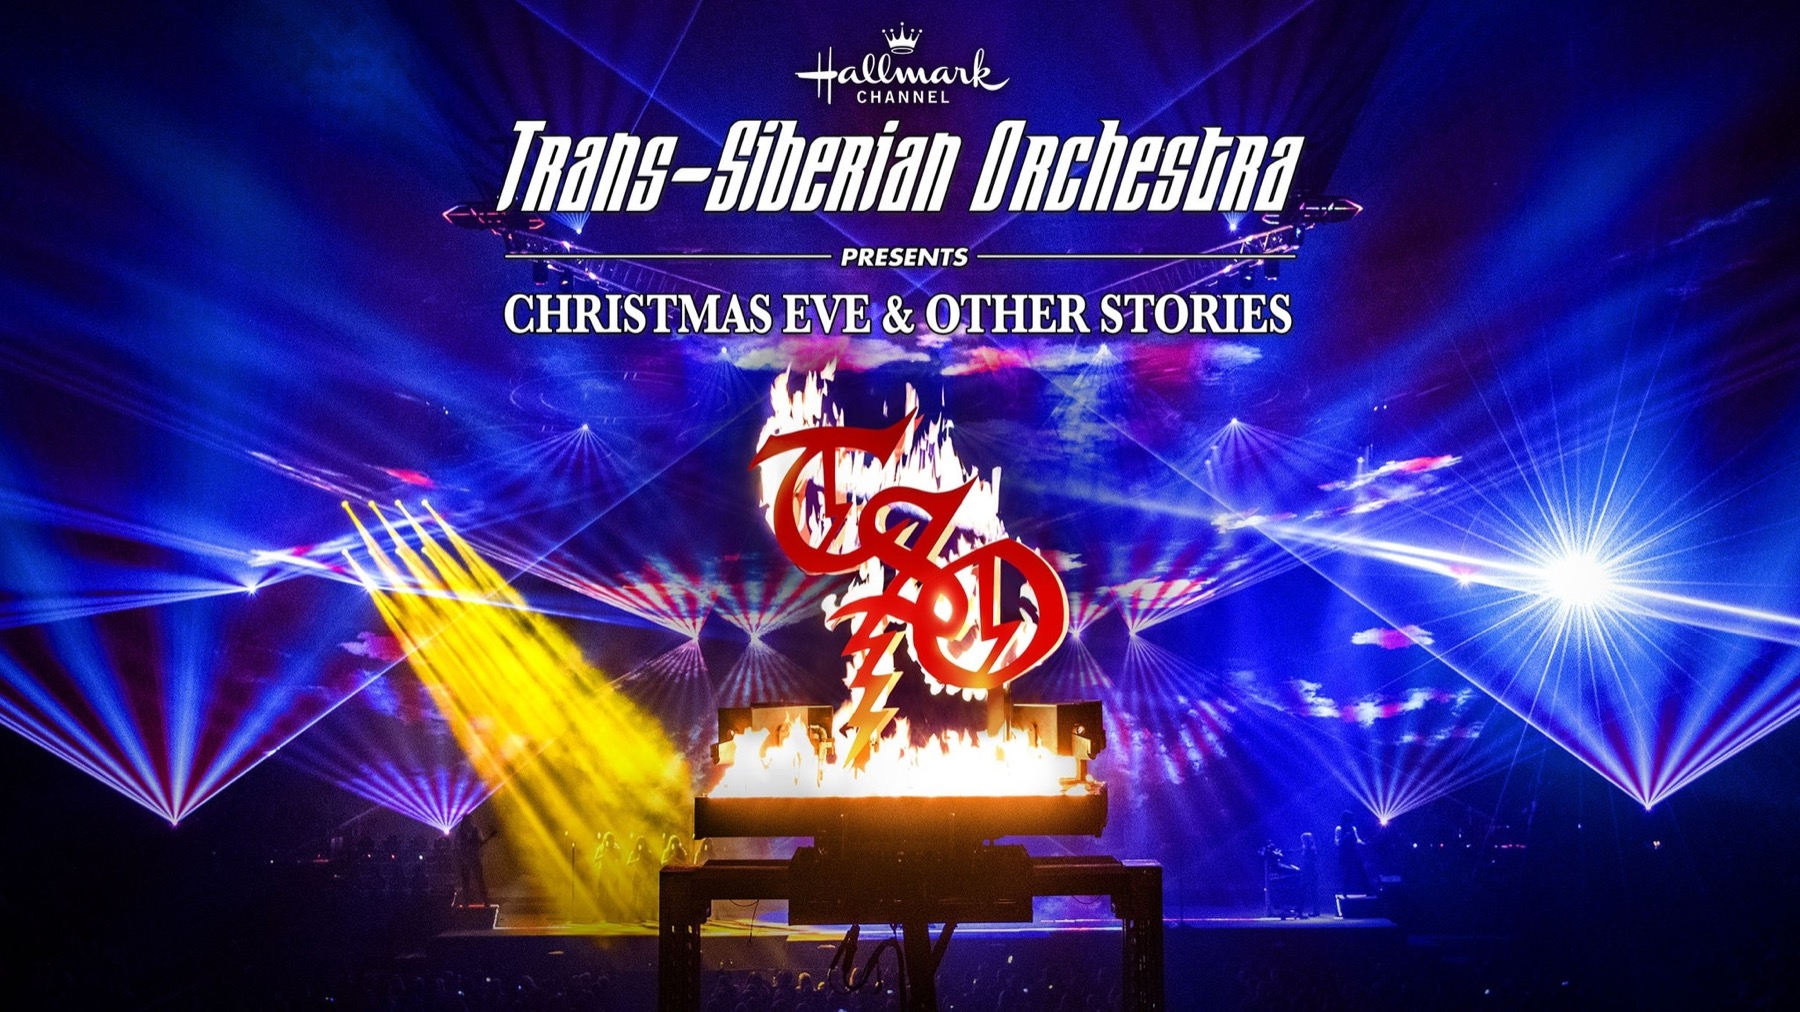 Christmas Graphics 2019.Trans Siberian Orchestra Christmas Eve Other Stories 12